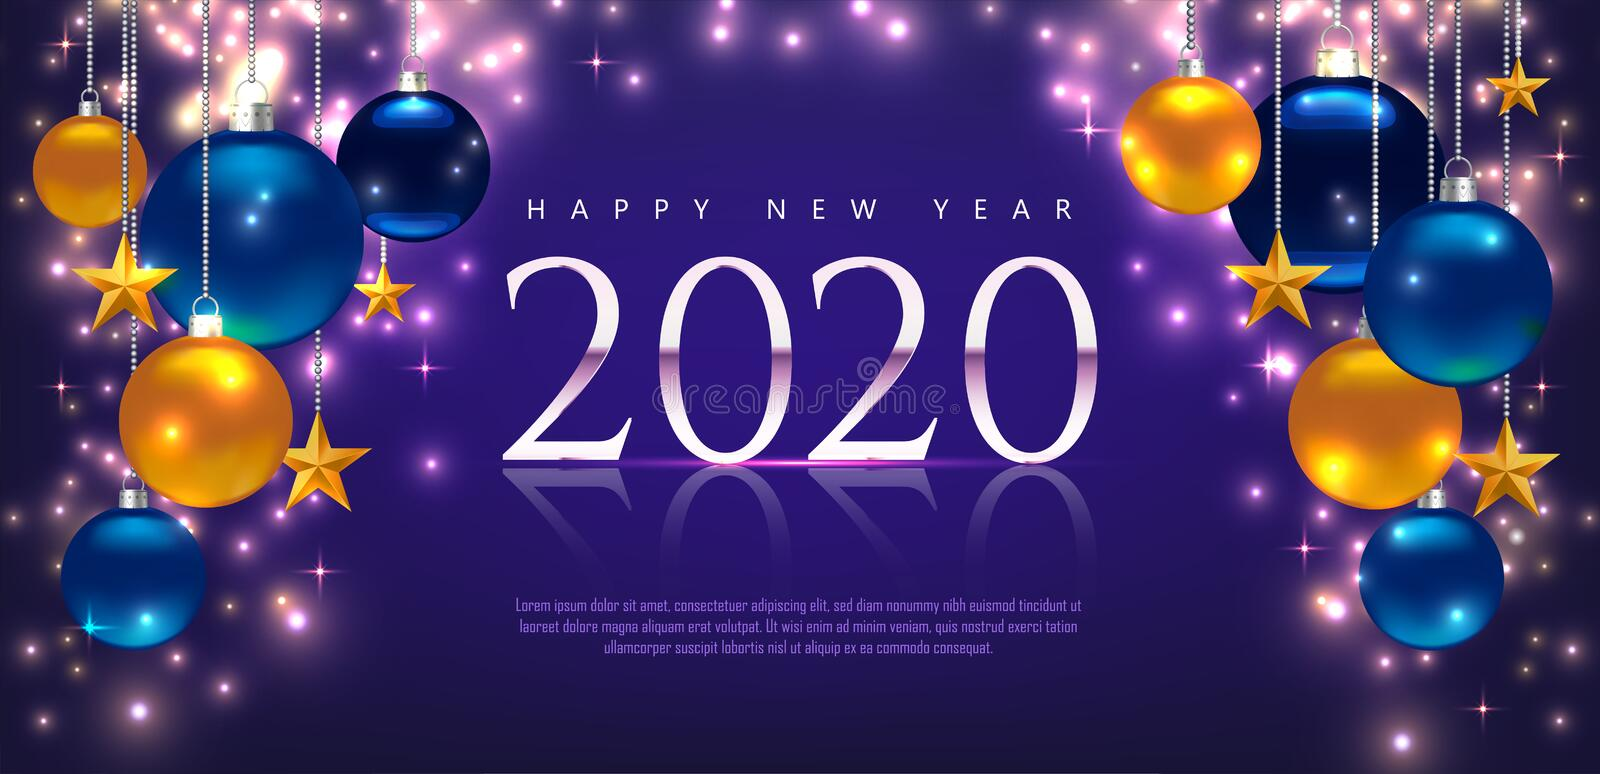 Magic template with greeting Happy New Year 2020. Template for Card, Flyer, poster, invitation, banner. Promotion or shopping stock photos